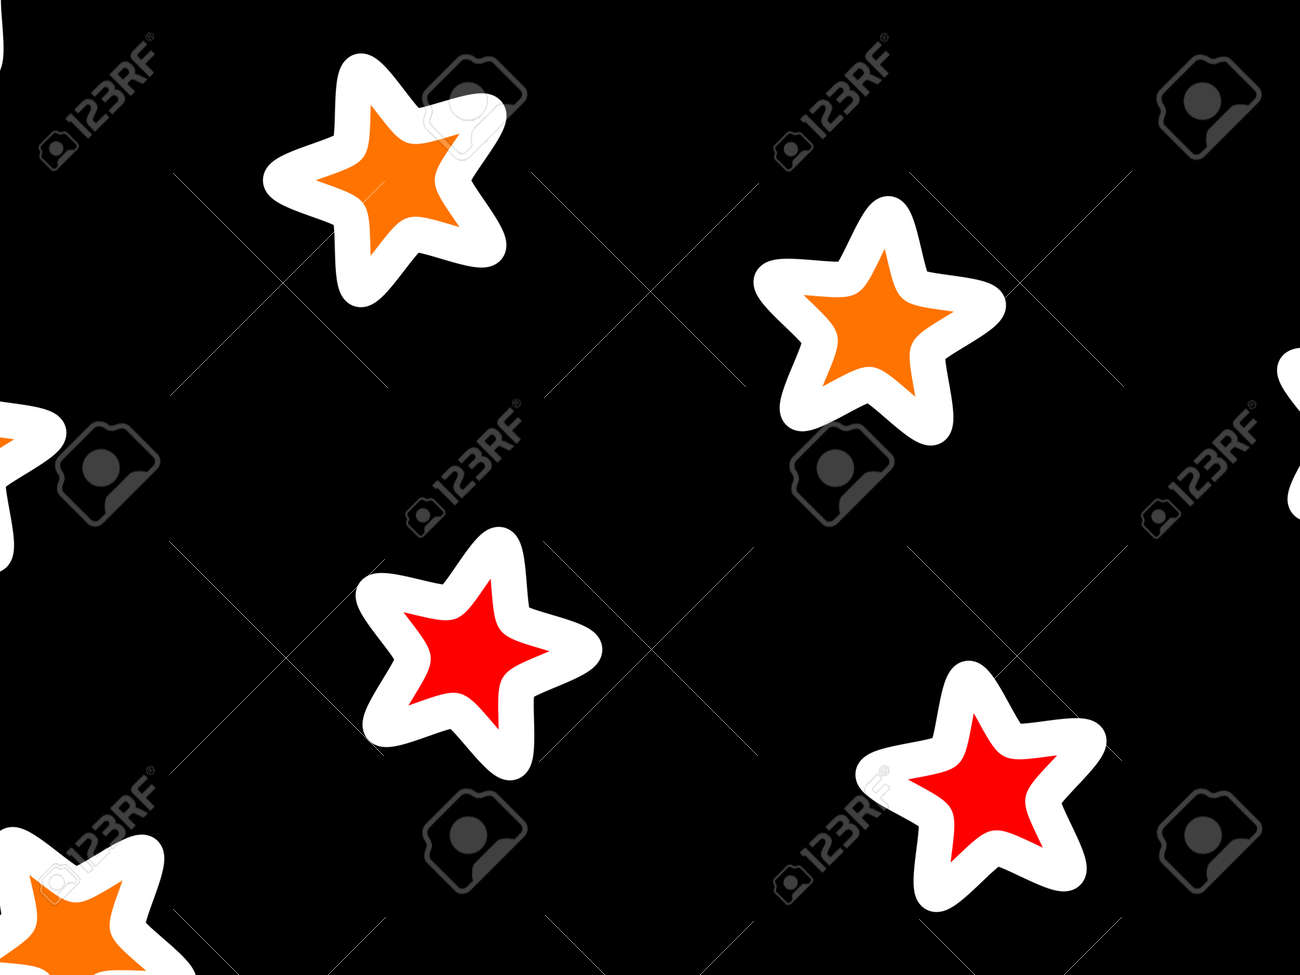 Abstract Background Based On Many Shapes For Your High Definition